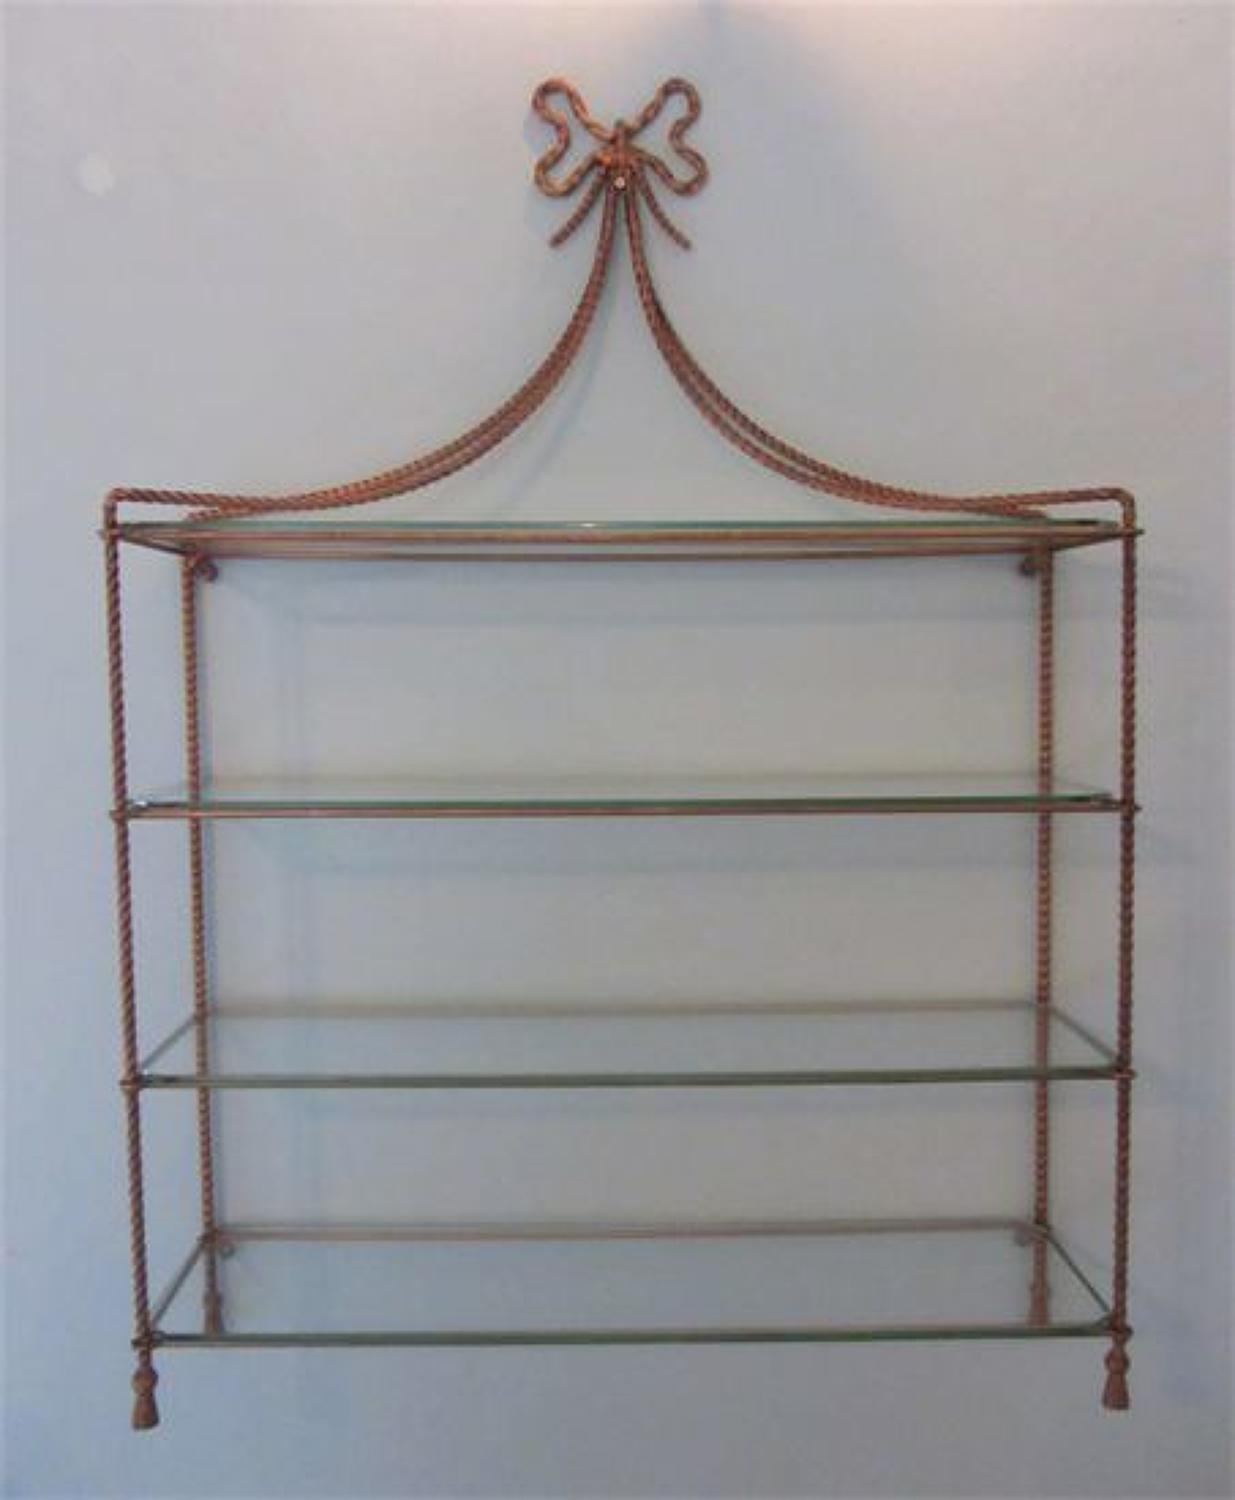 A Set of Gilt Metal Rope Twist Wall Shelves